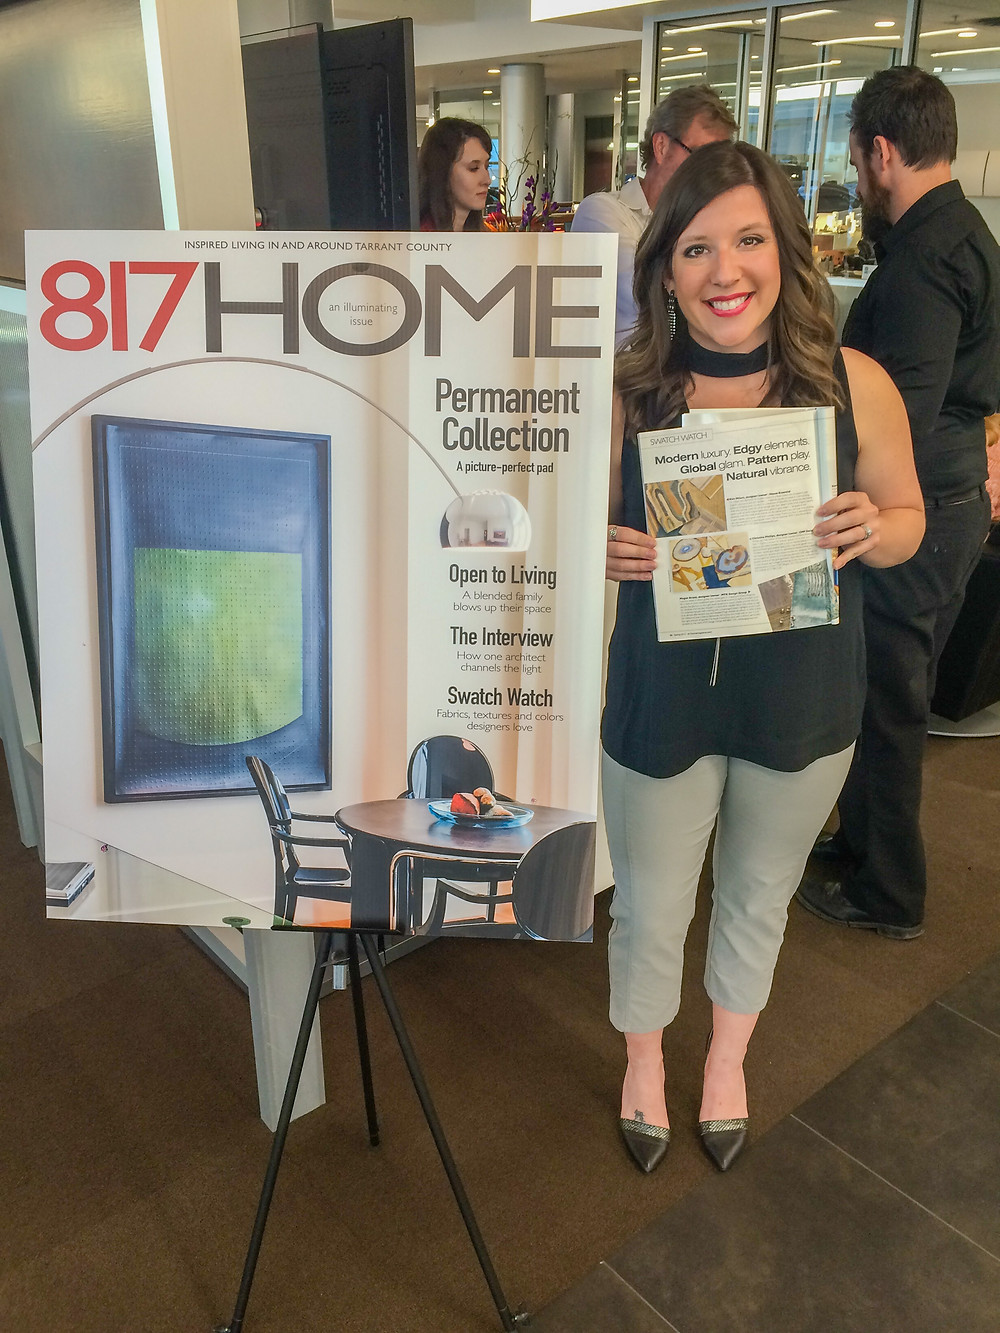 MTK Design Group attends launch party where company is published, DFW Interior Decorating Services